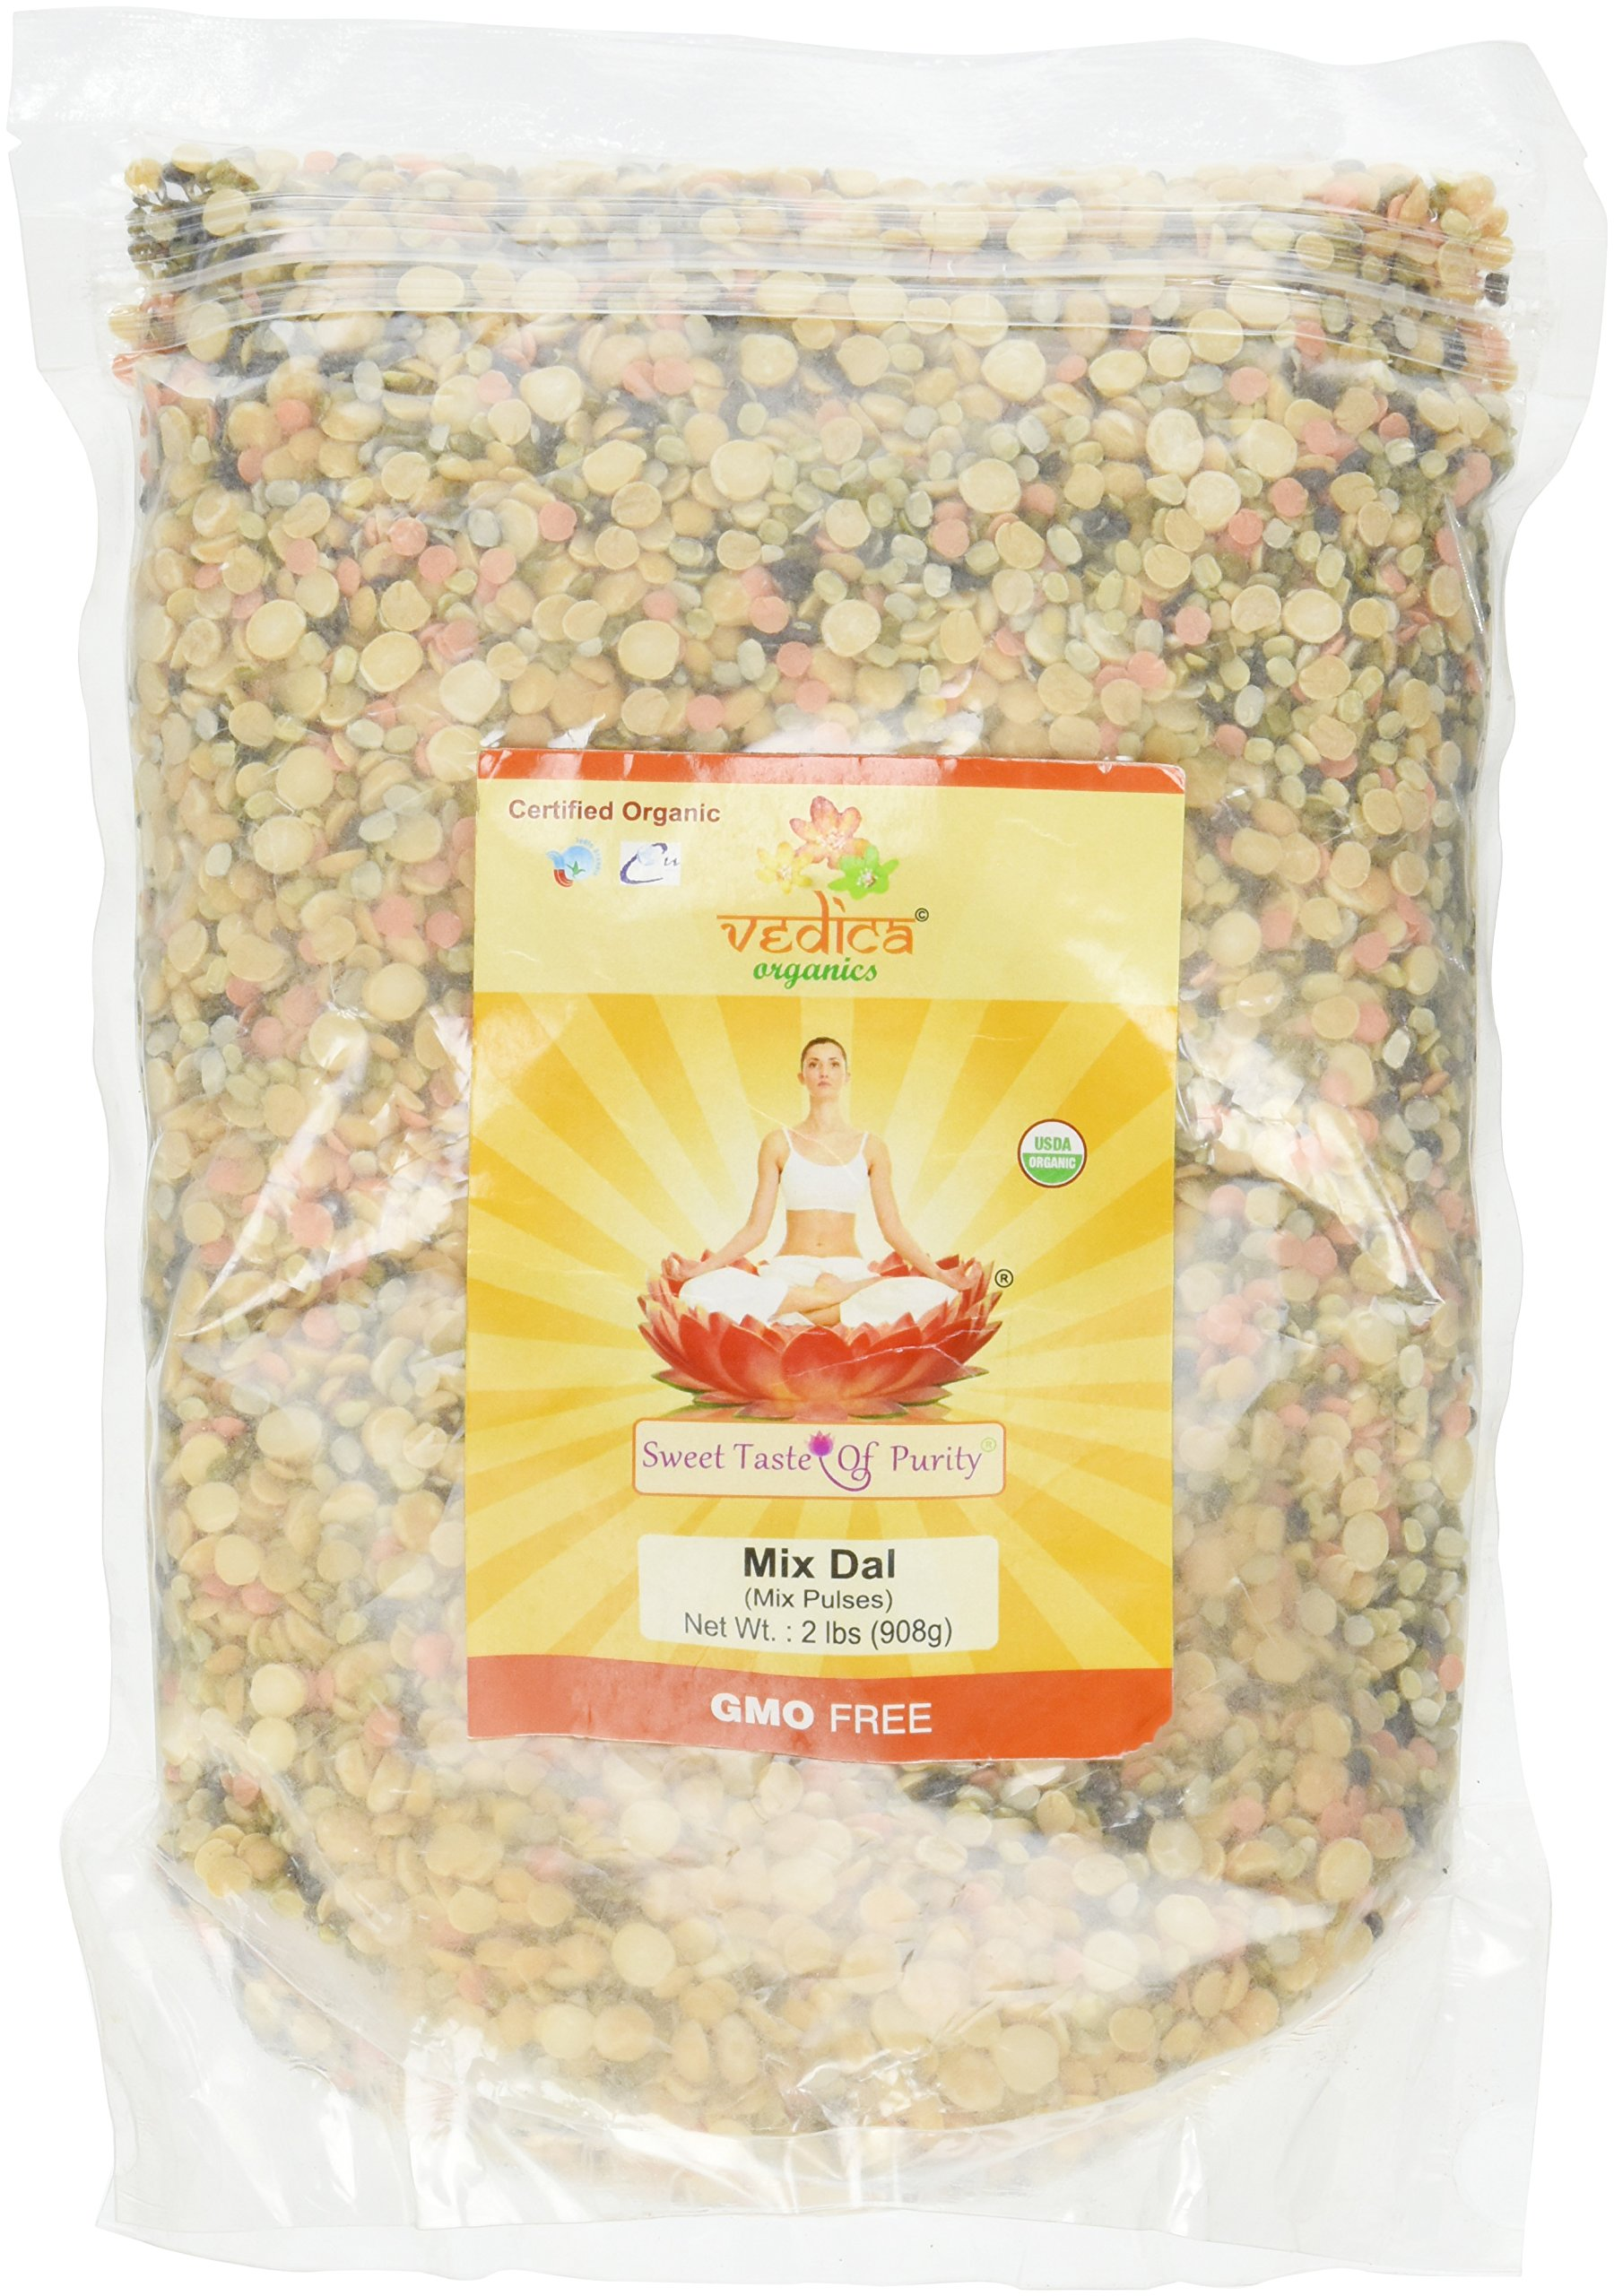 Organic Mixed Dal